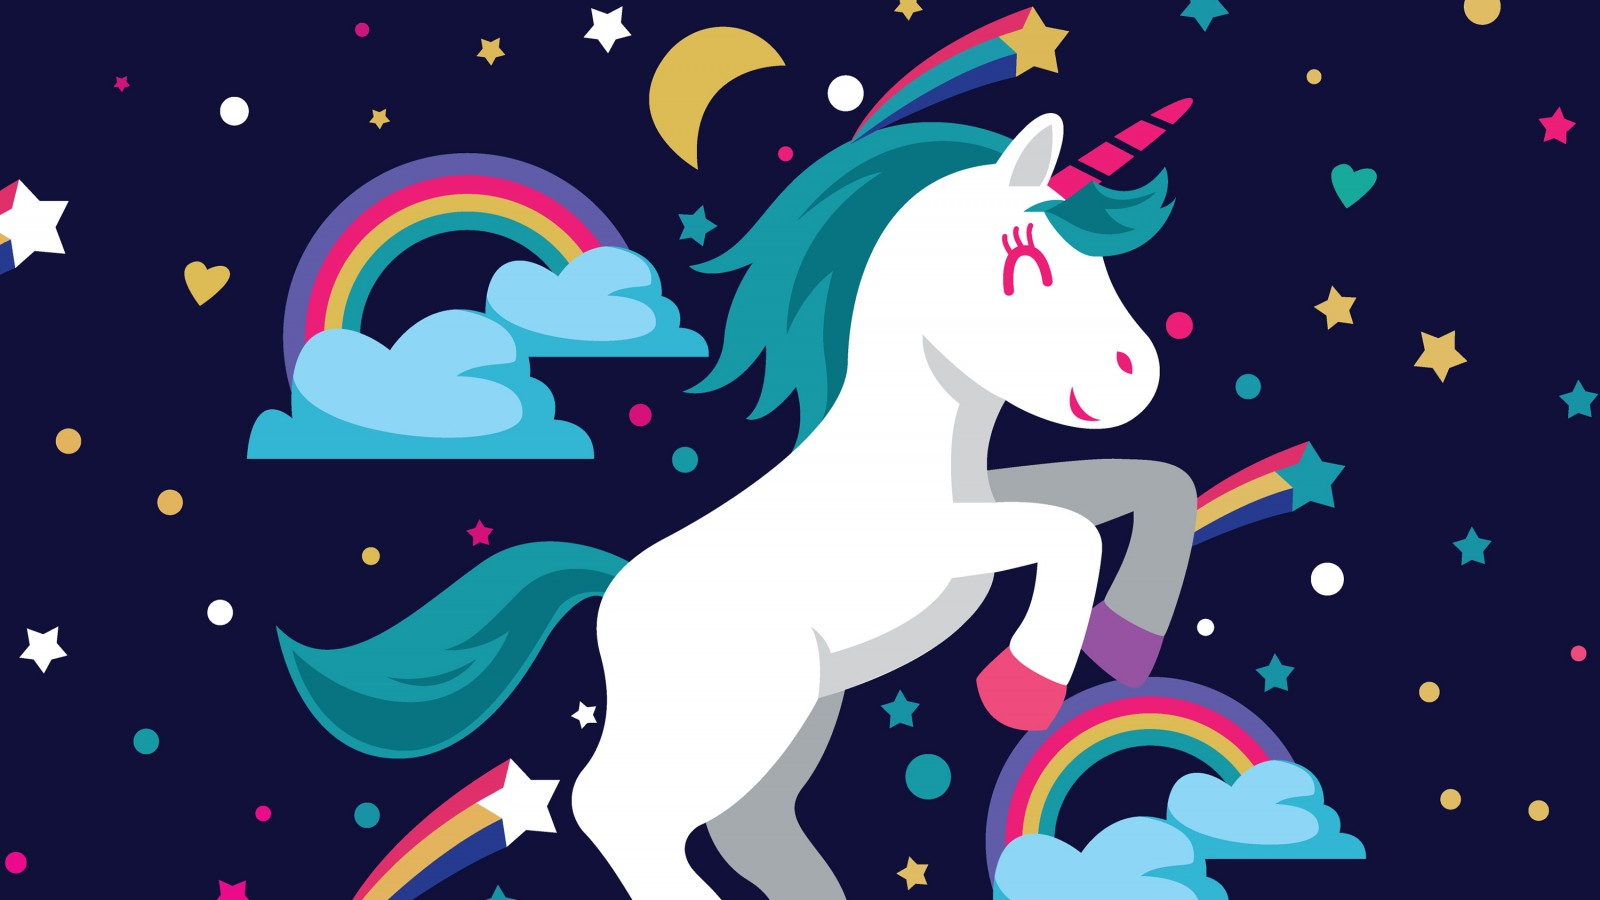 Download Wallpaper Windows 8 3d Unicorn Wallpapers Hd Wallpapers Id 27126